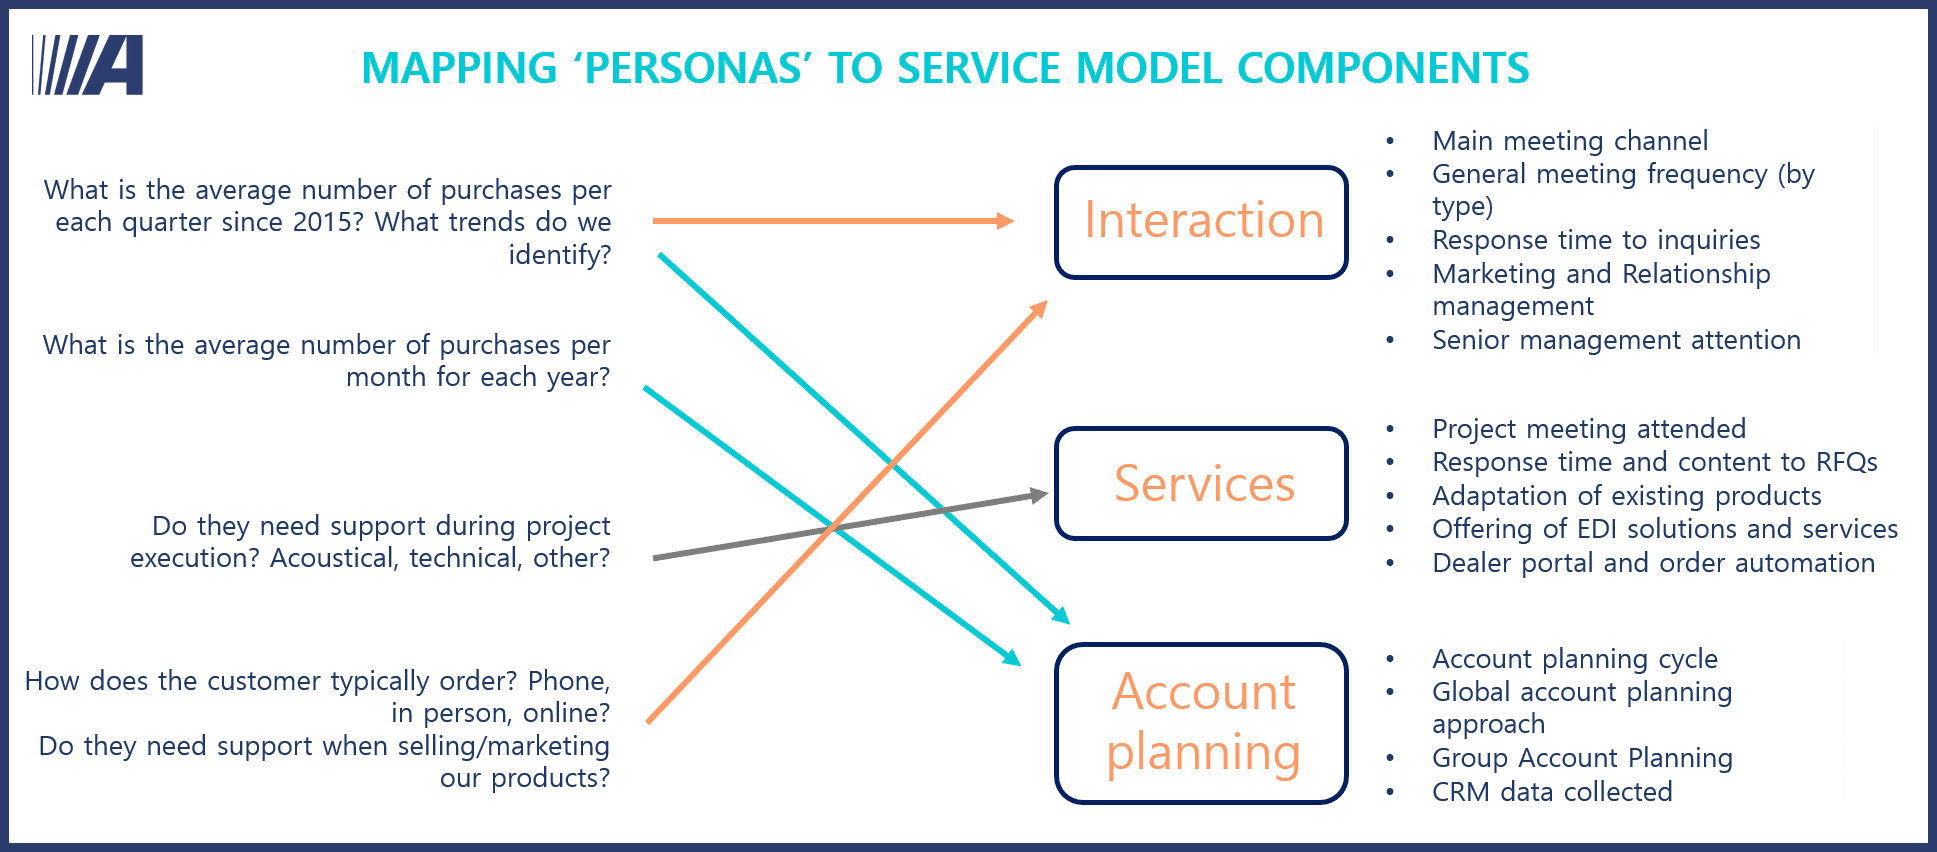 Mapping personas to service model components